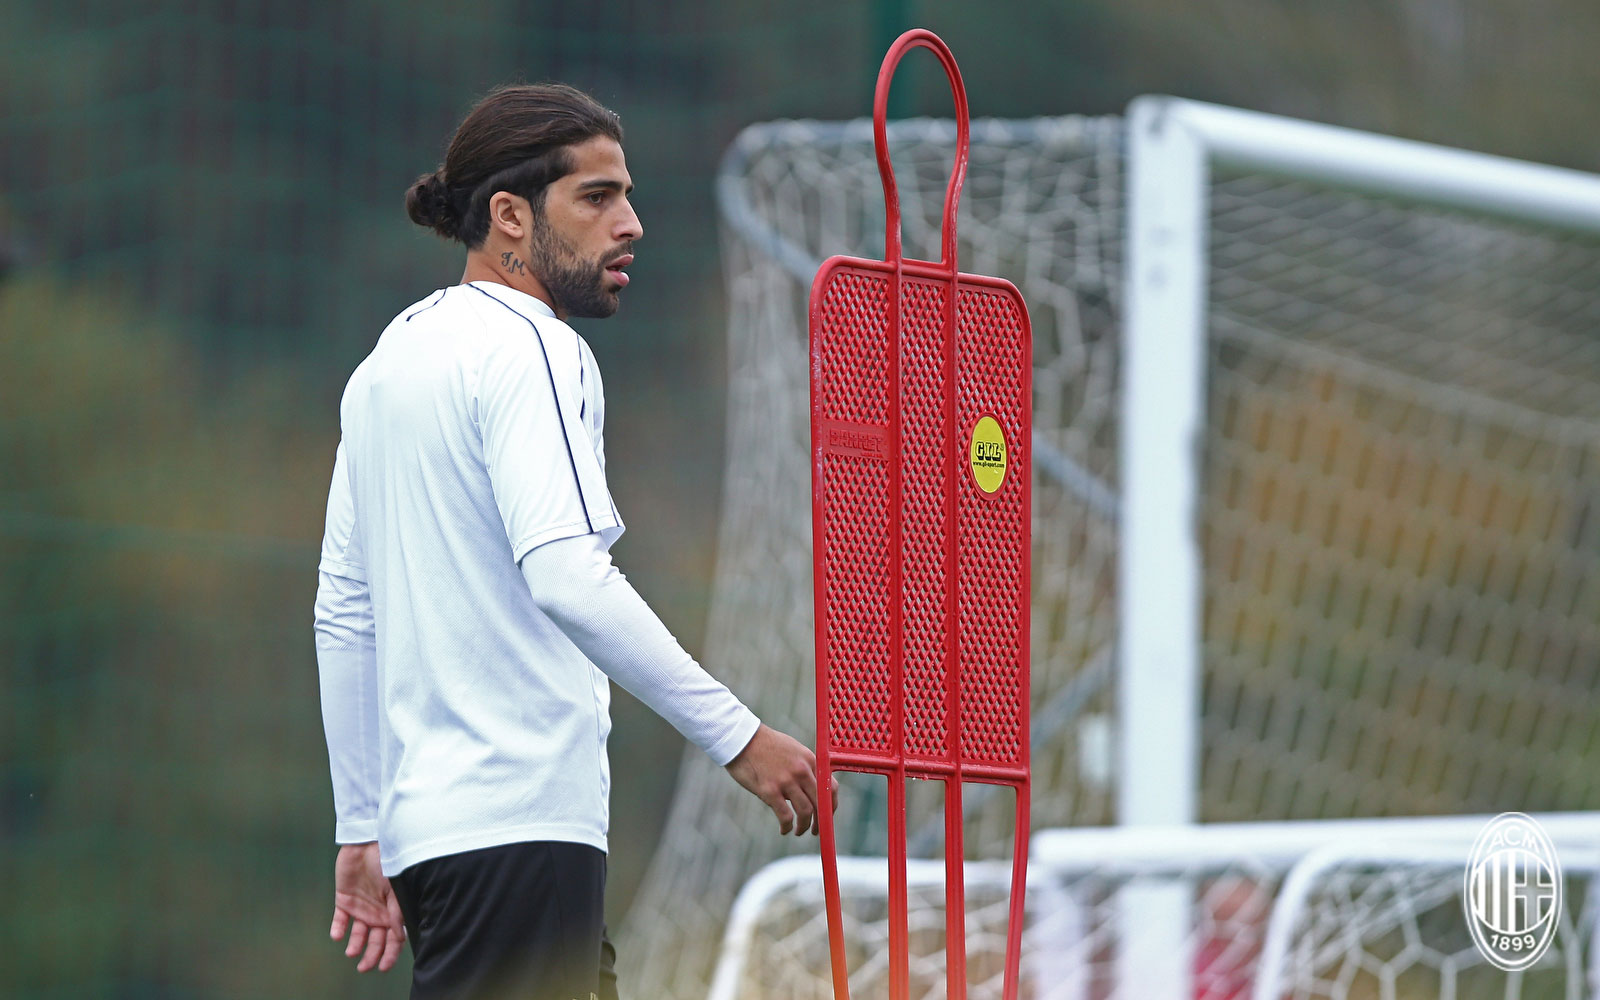 Ricardo Rodríguez during training at Milanello. (@acmilan.com)